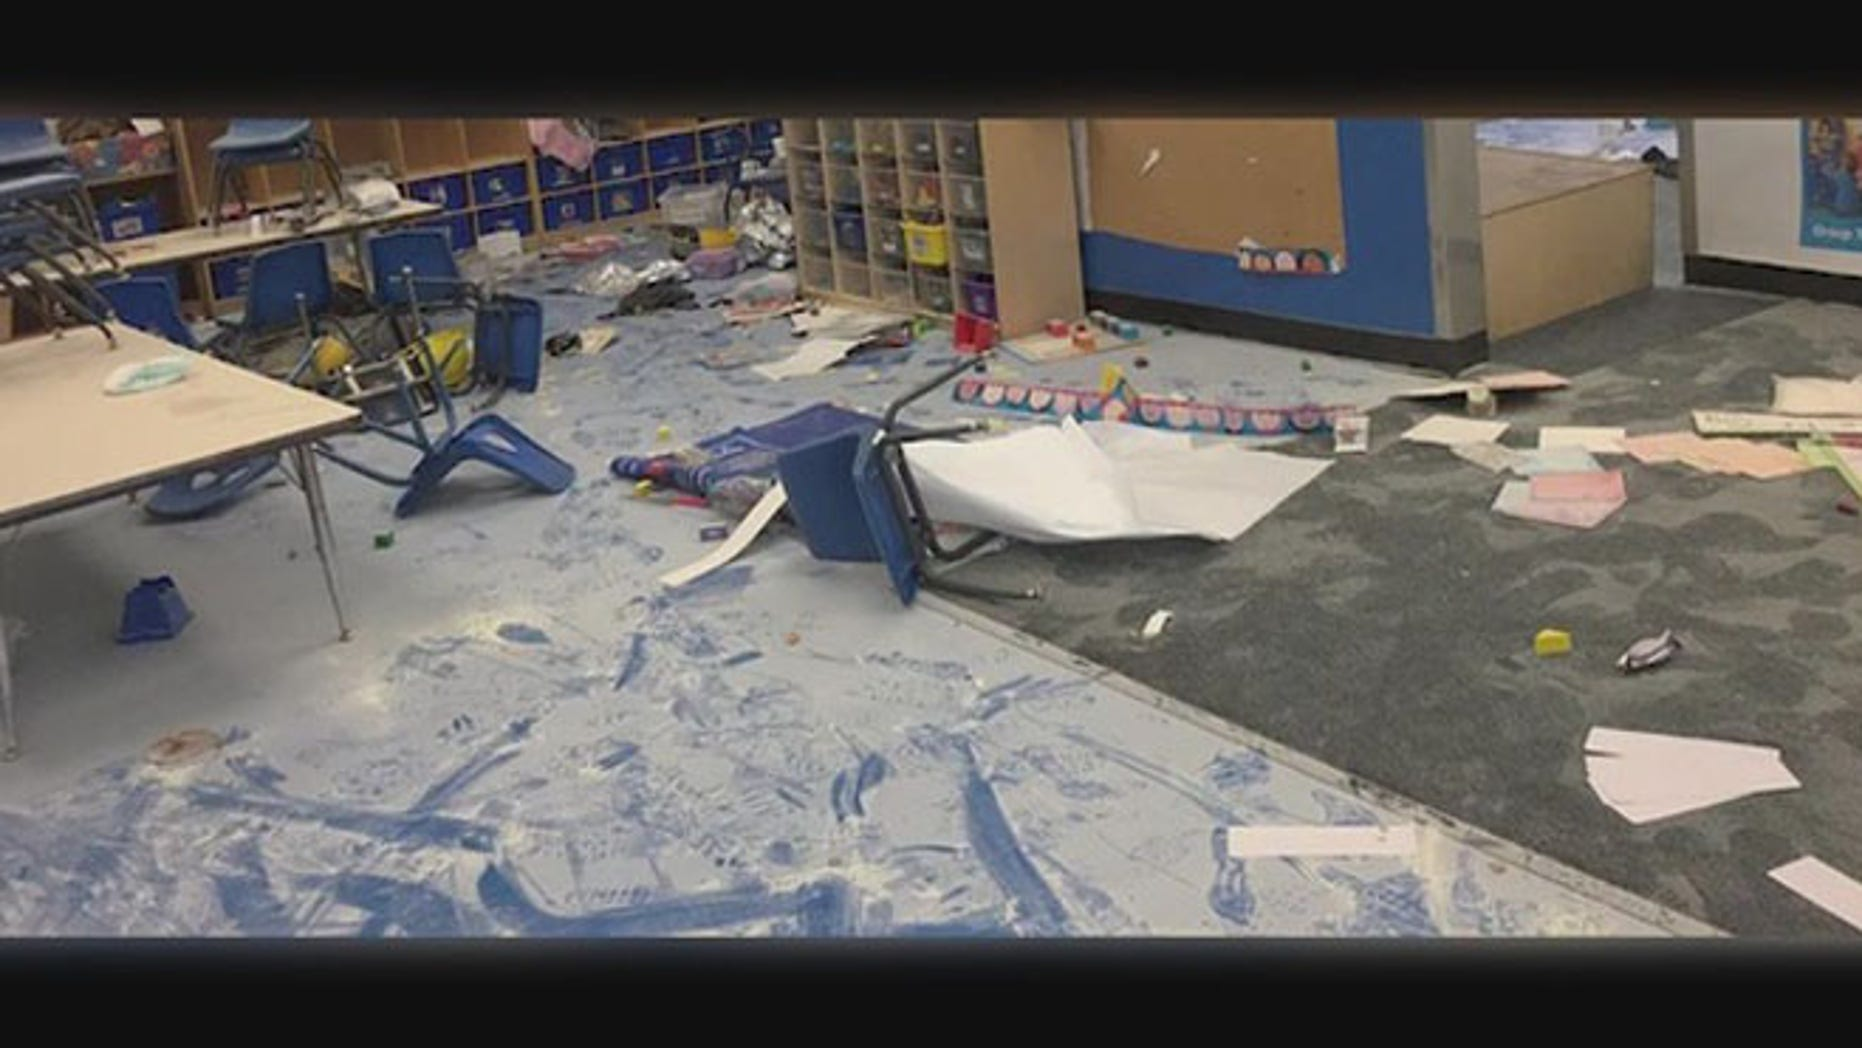 Five young kids broke into a San Pedro Child Development Center and vandalized the facility.